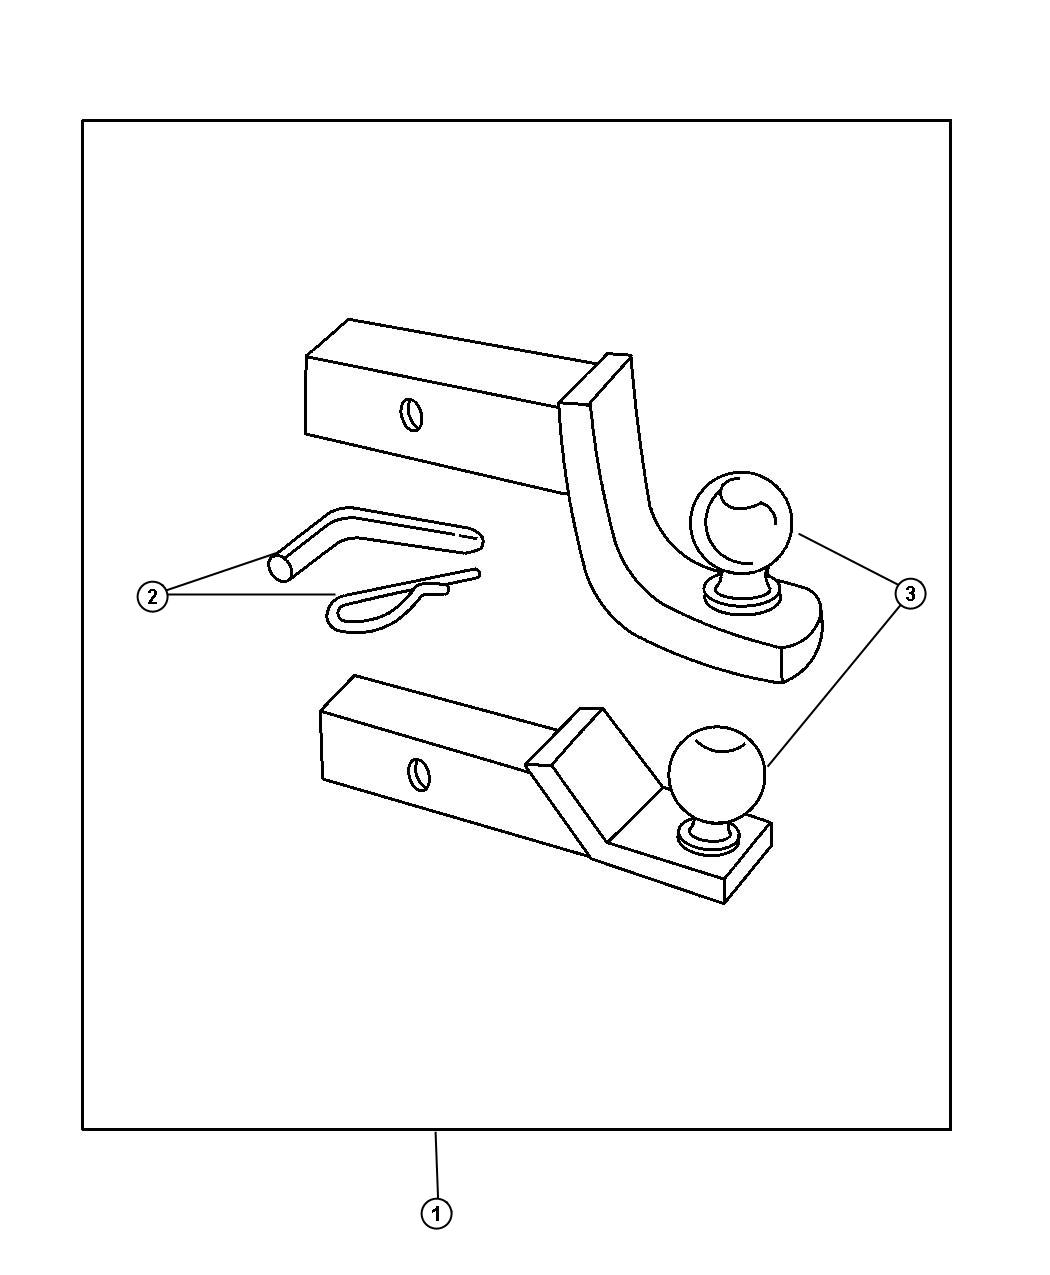 Diagram Adapter Kit - Ball Mount for your Dodge Dart